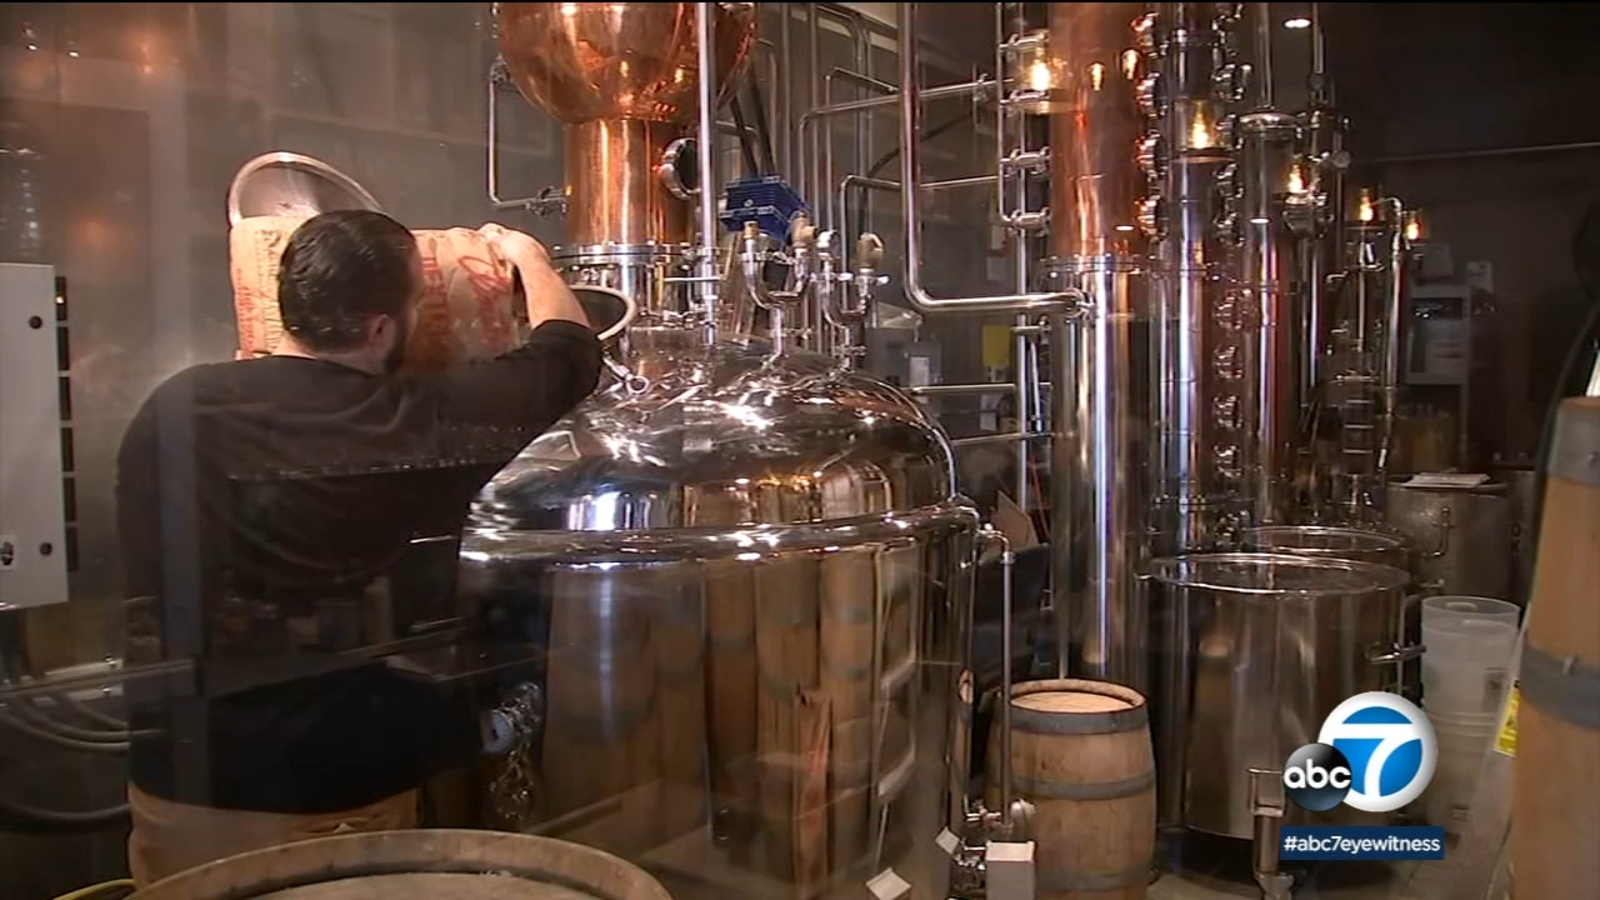 Covid 19 Response Claremont Distillery Pivots From Spirits To Making Hand Sanitizer Abc7 Los Angeles